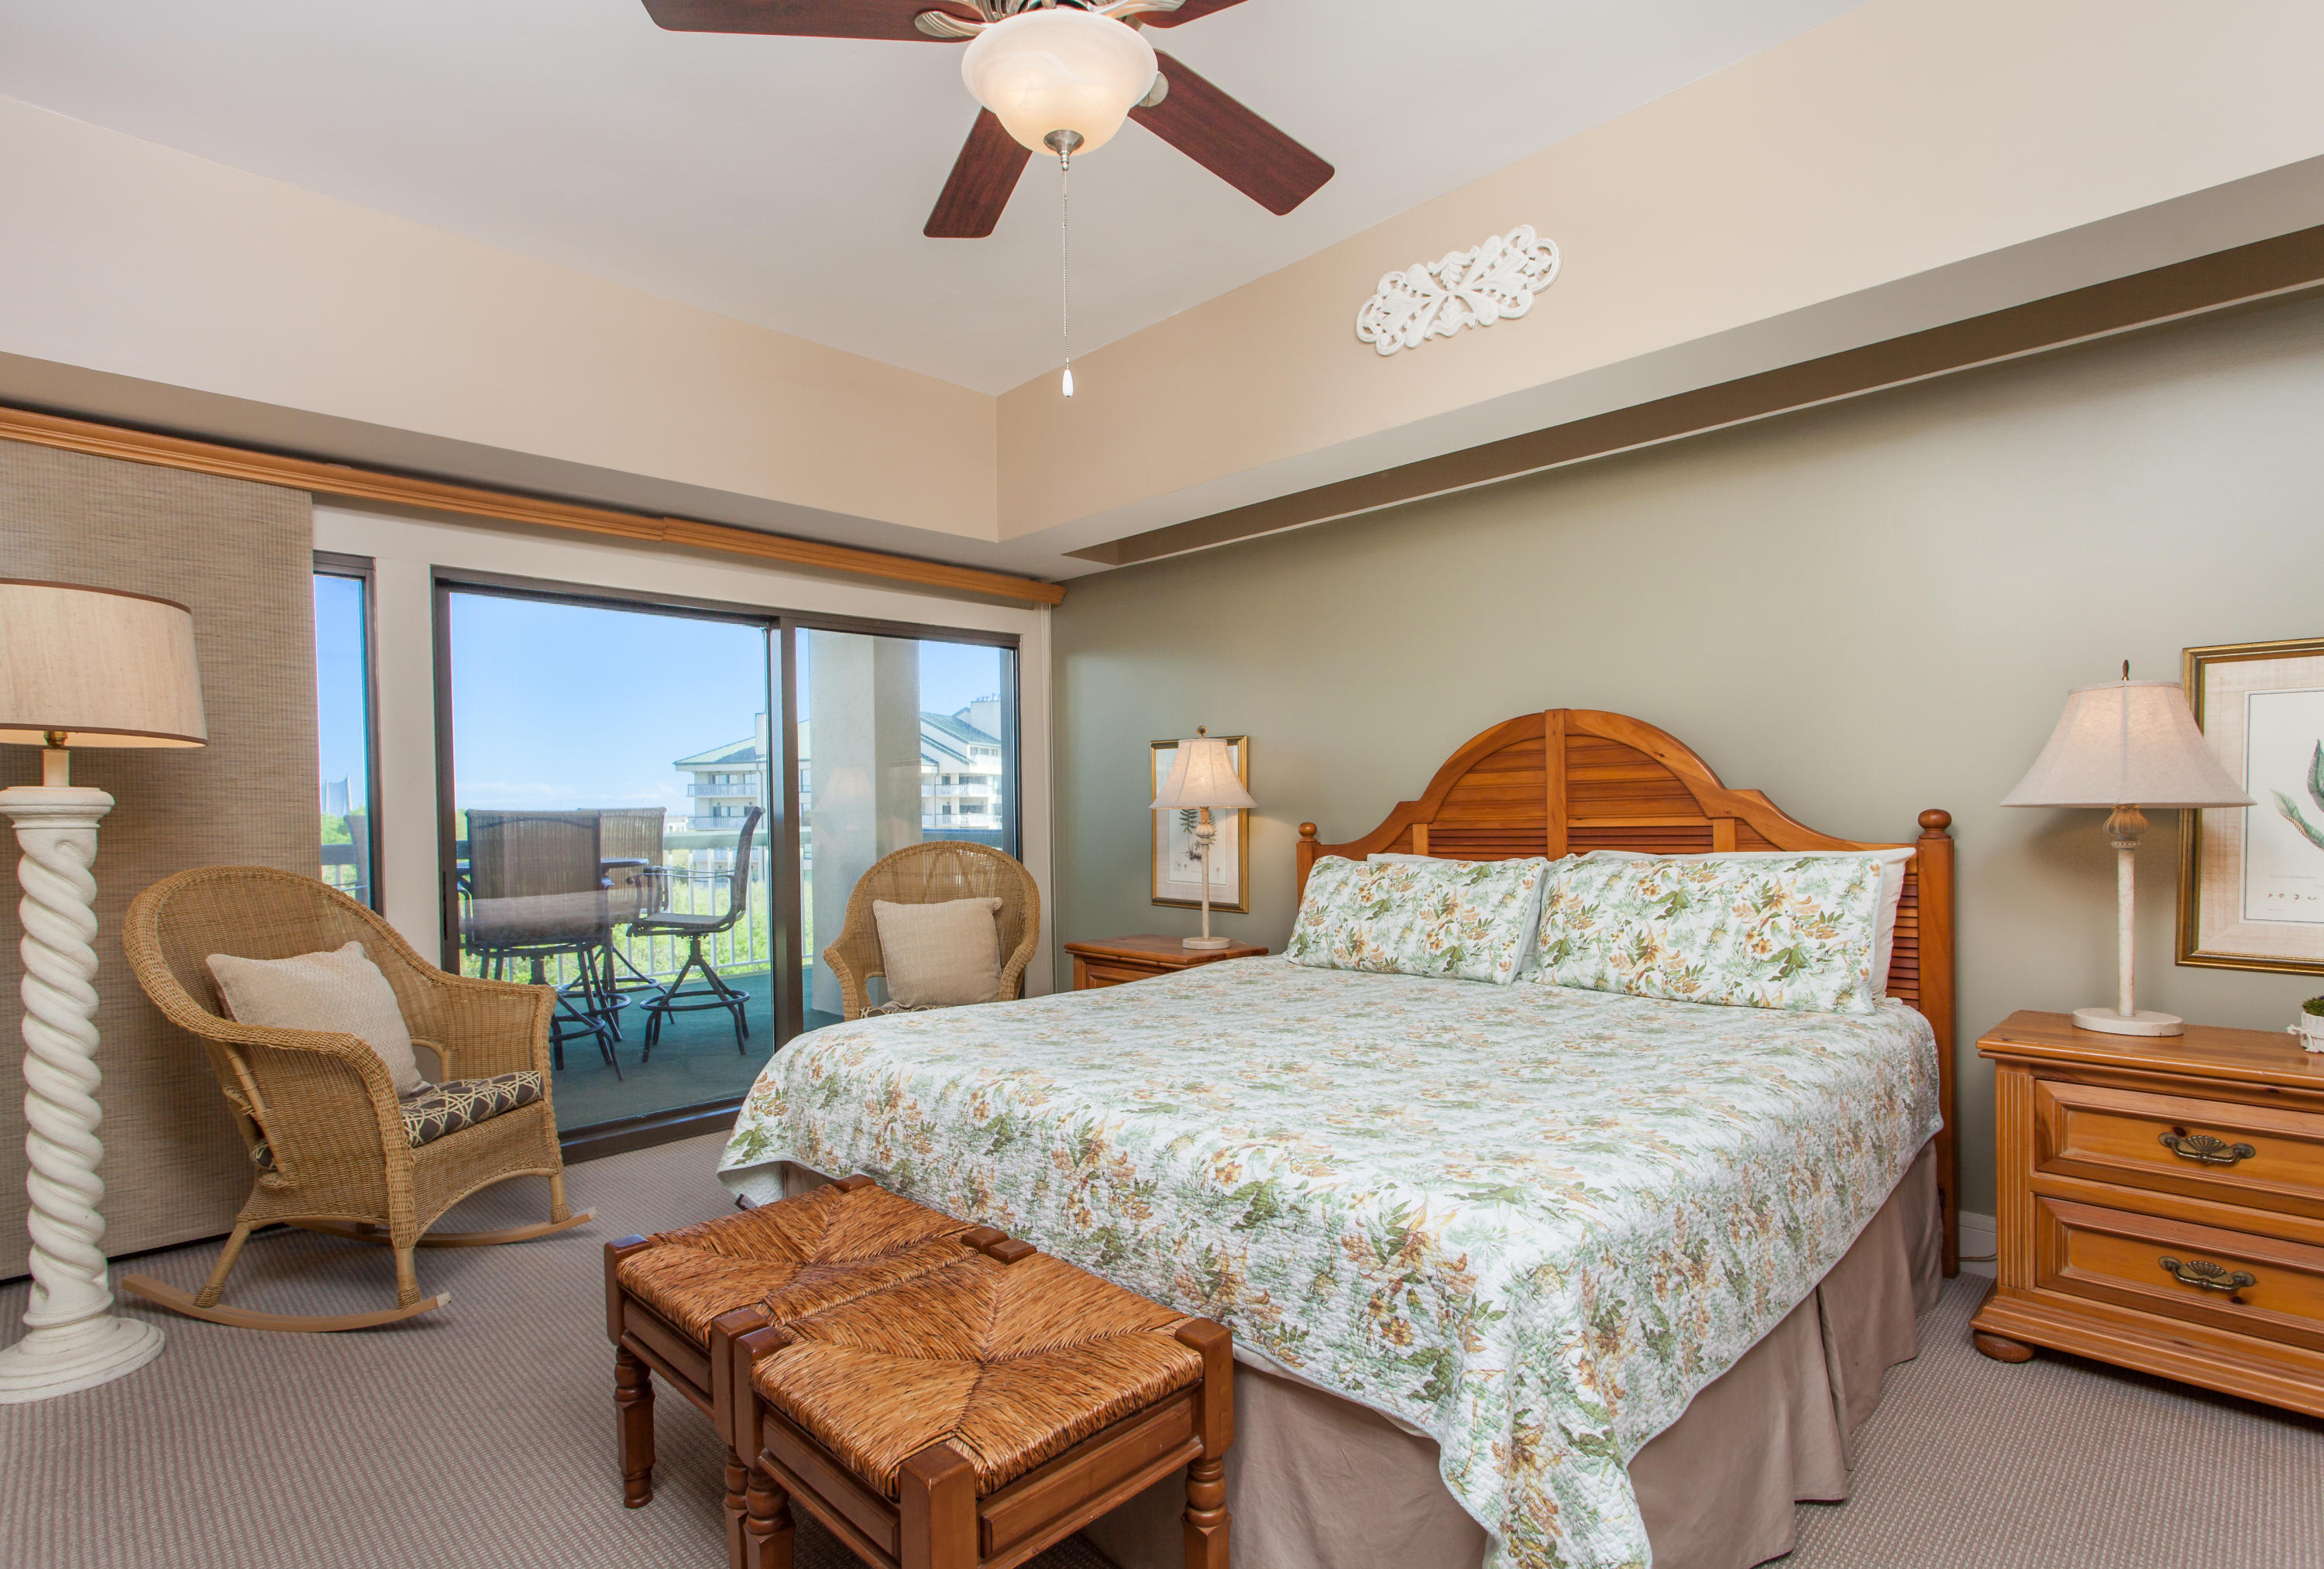 Wild Dunes Homes For Sale - 1410 Ocean Club, Isle of Palms, SC - 4